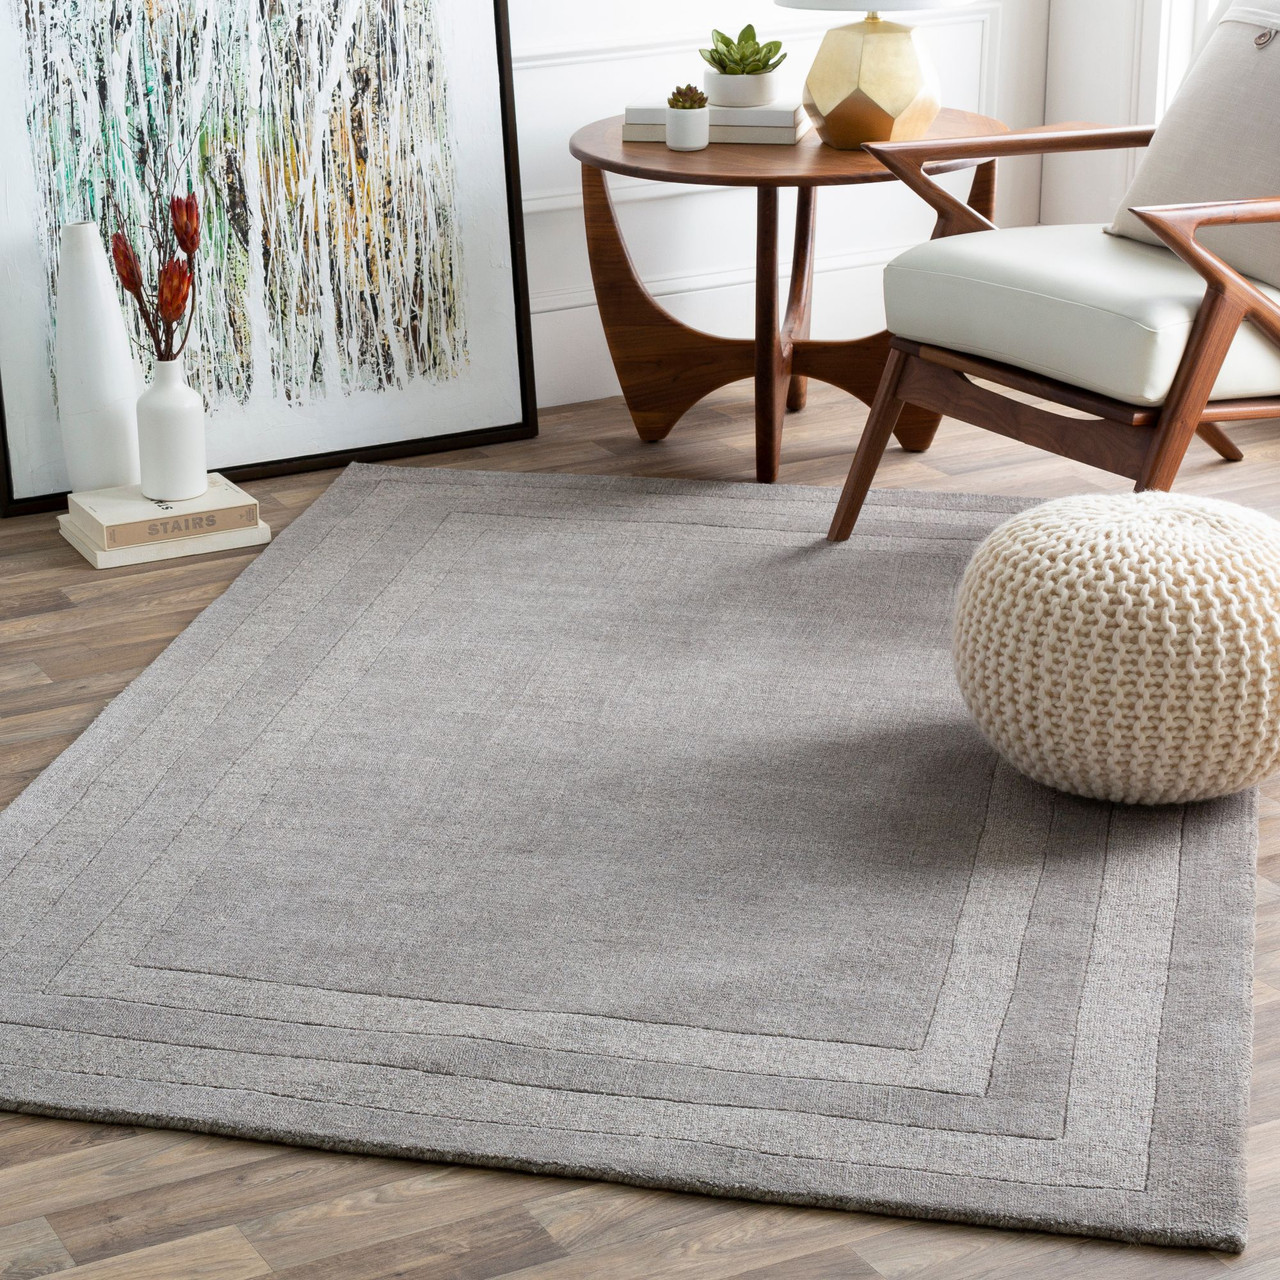 4 X 6 Gray Color Rectangular Hand Tufted Area Rug With Border